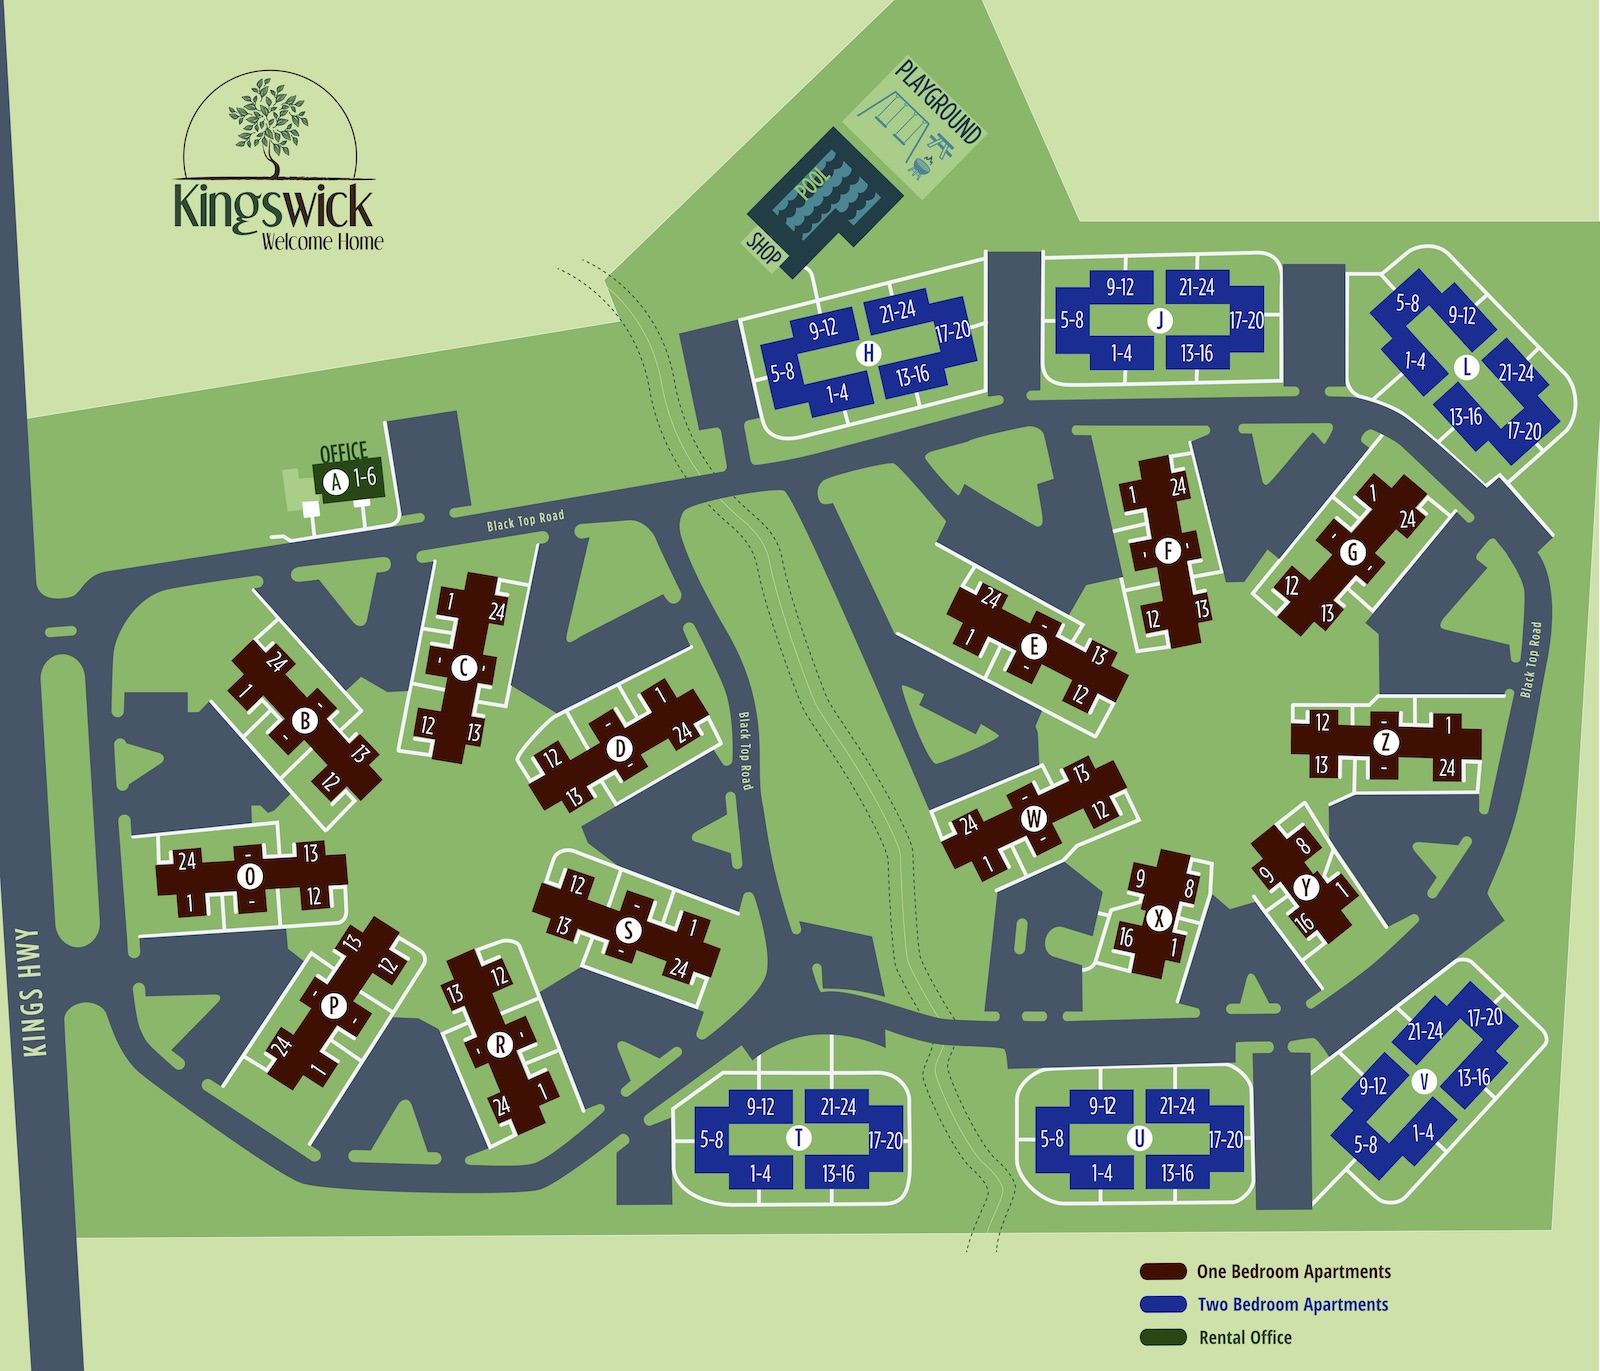 Map view of Kingswick Apartment community in West Deptford, NJ